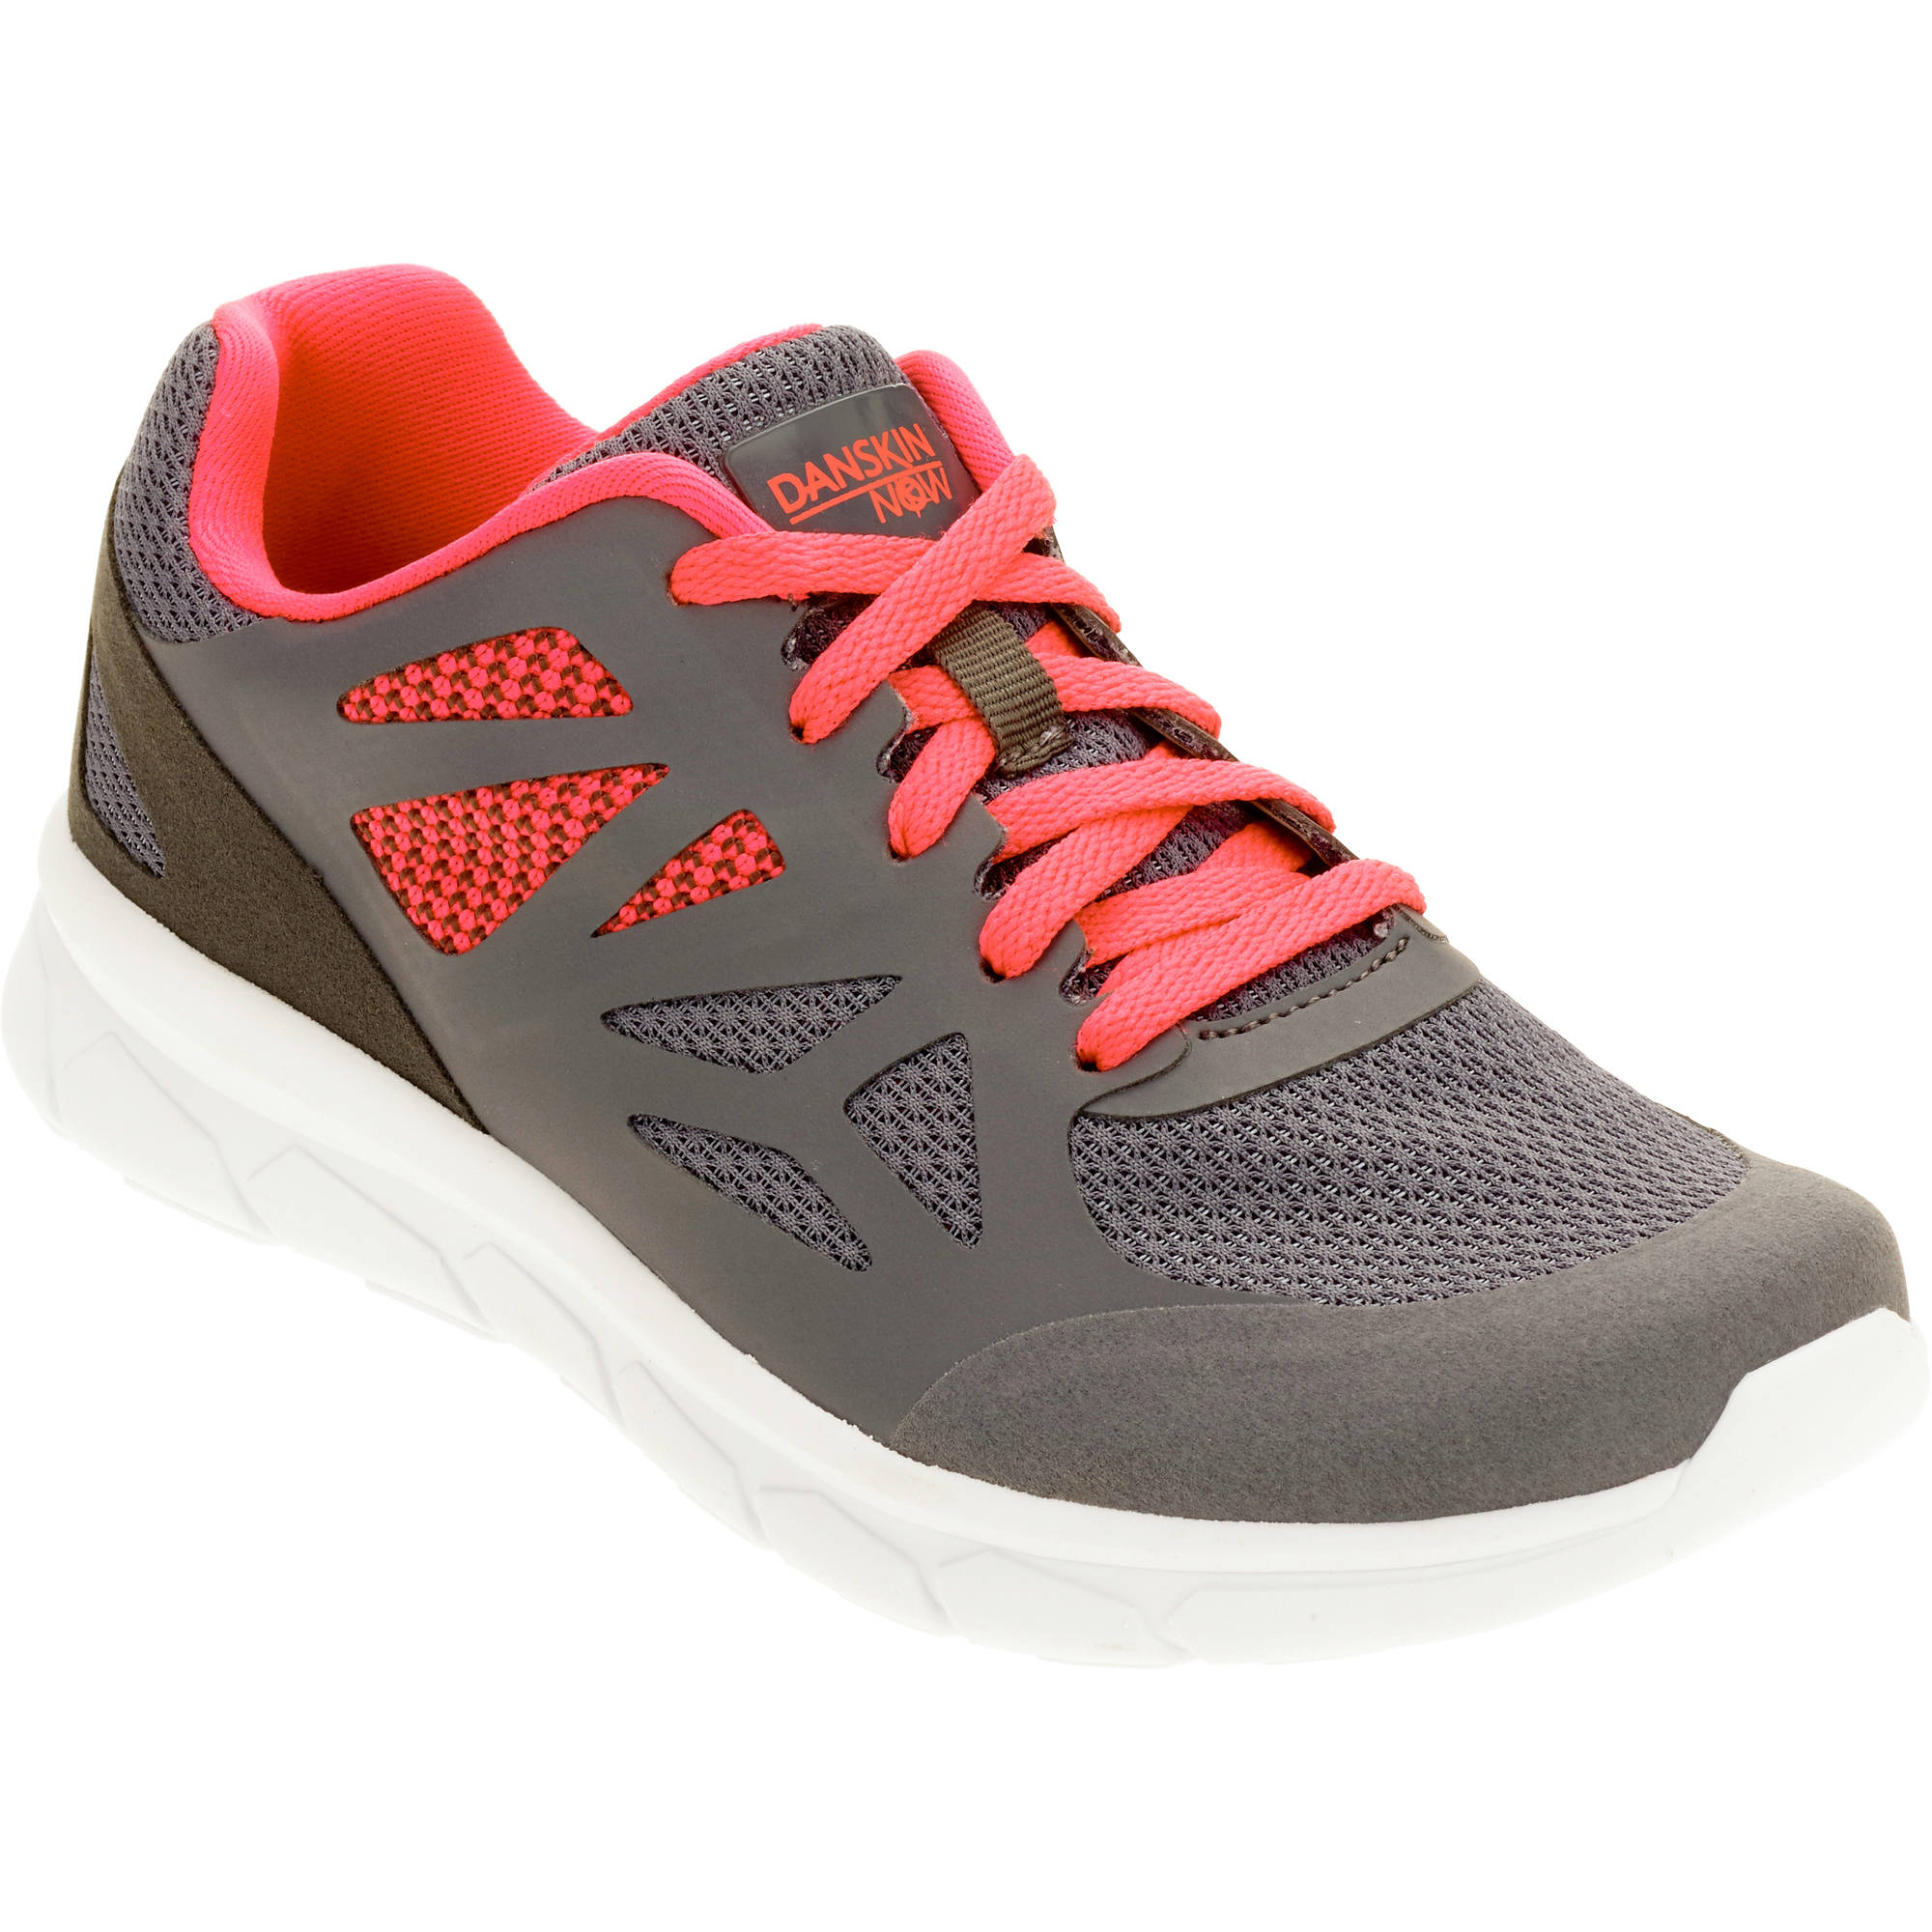 Danskin Now Women's Lightweight Athletic Shoe